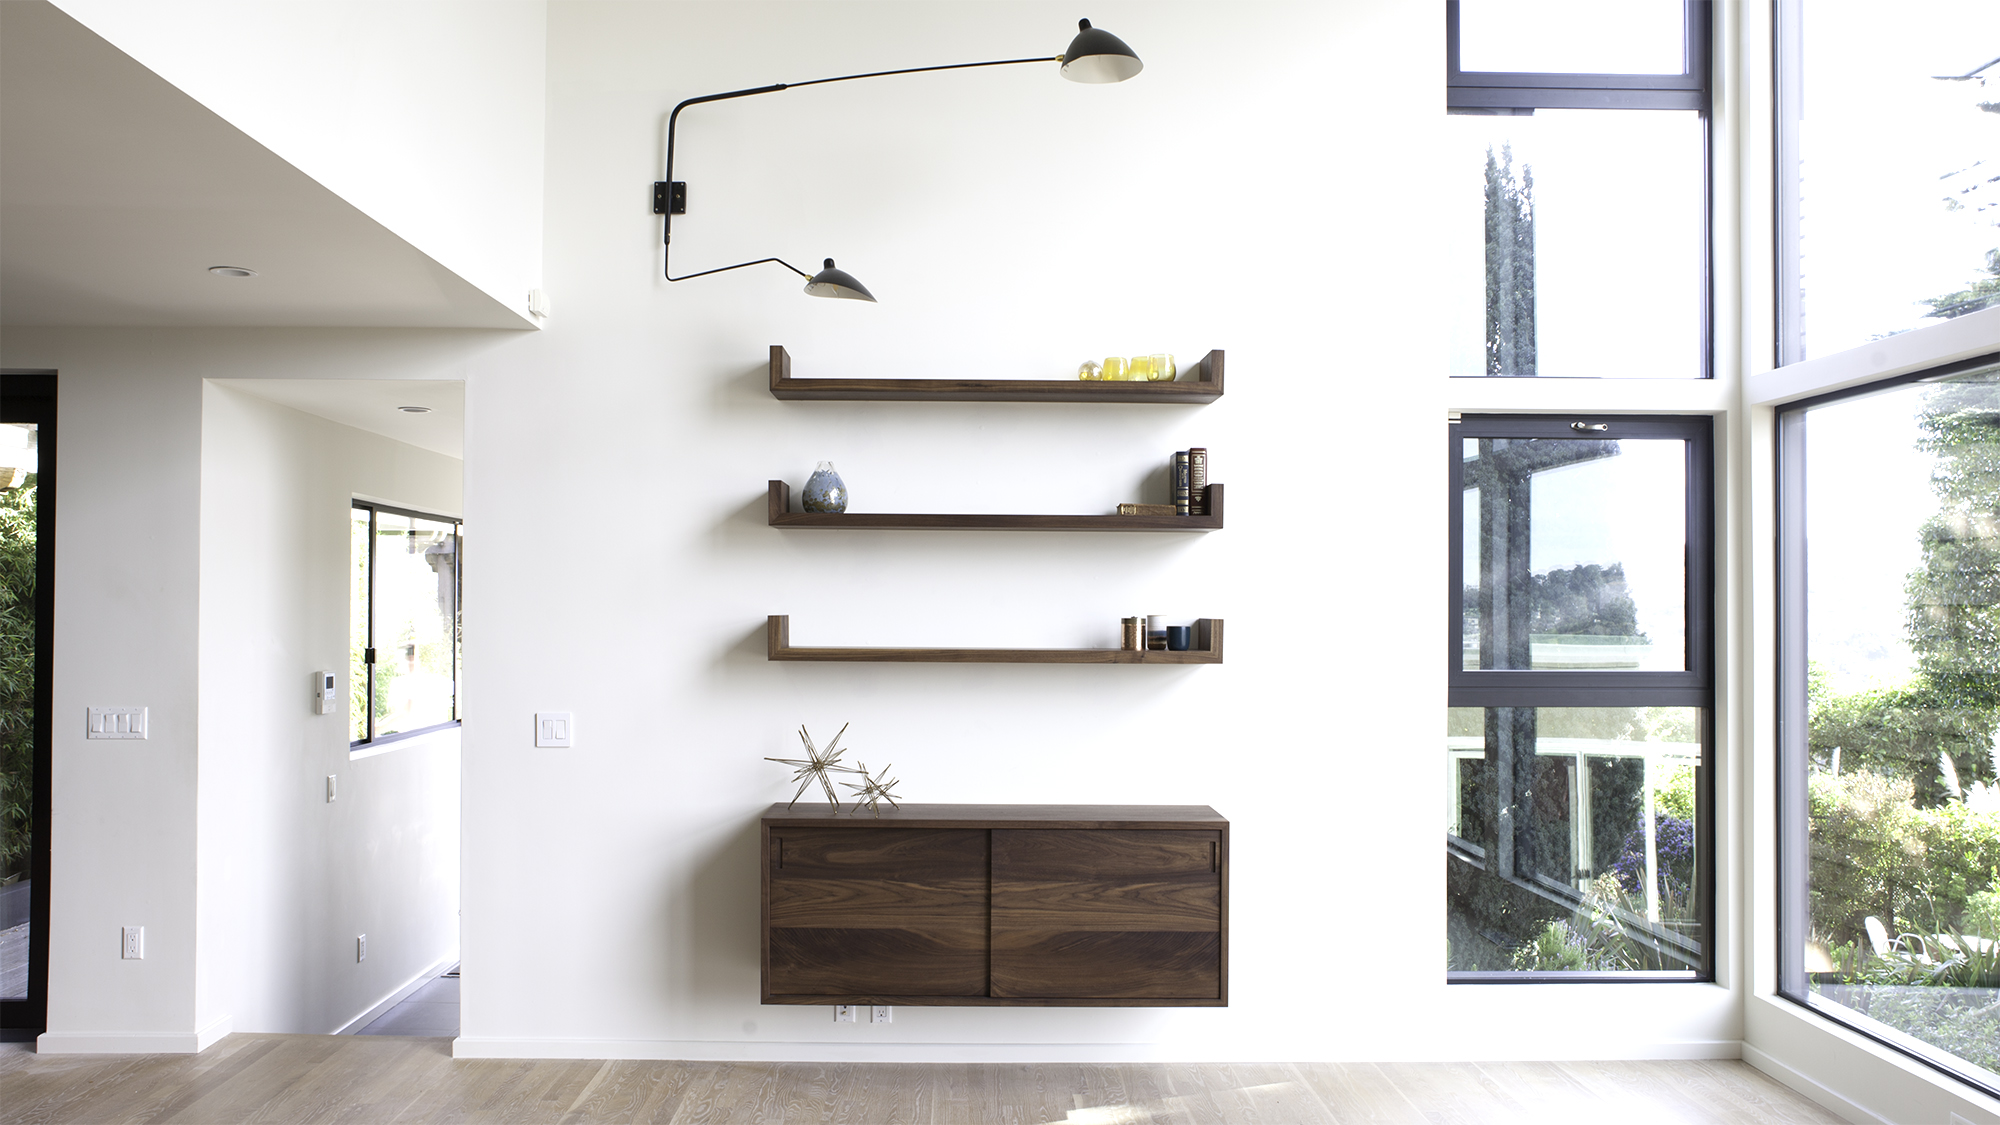 Img_Projects_Carr_Credenza_02.jpg